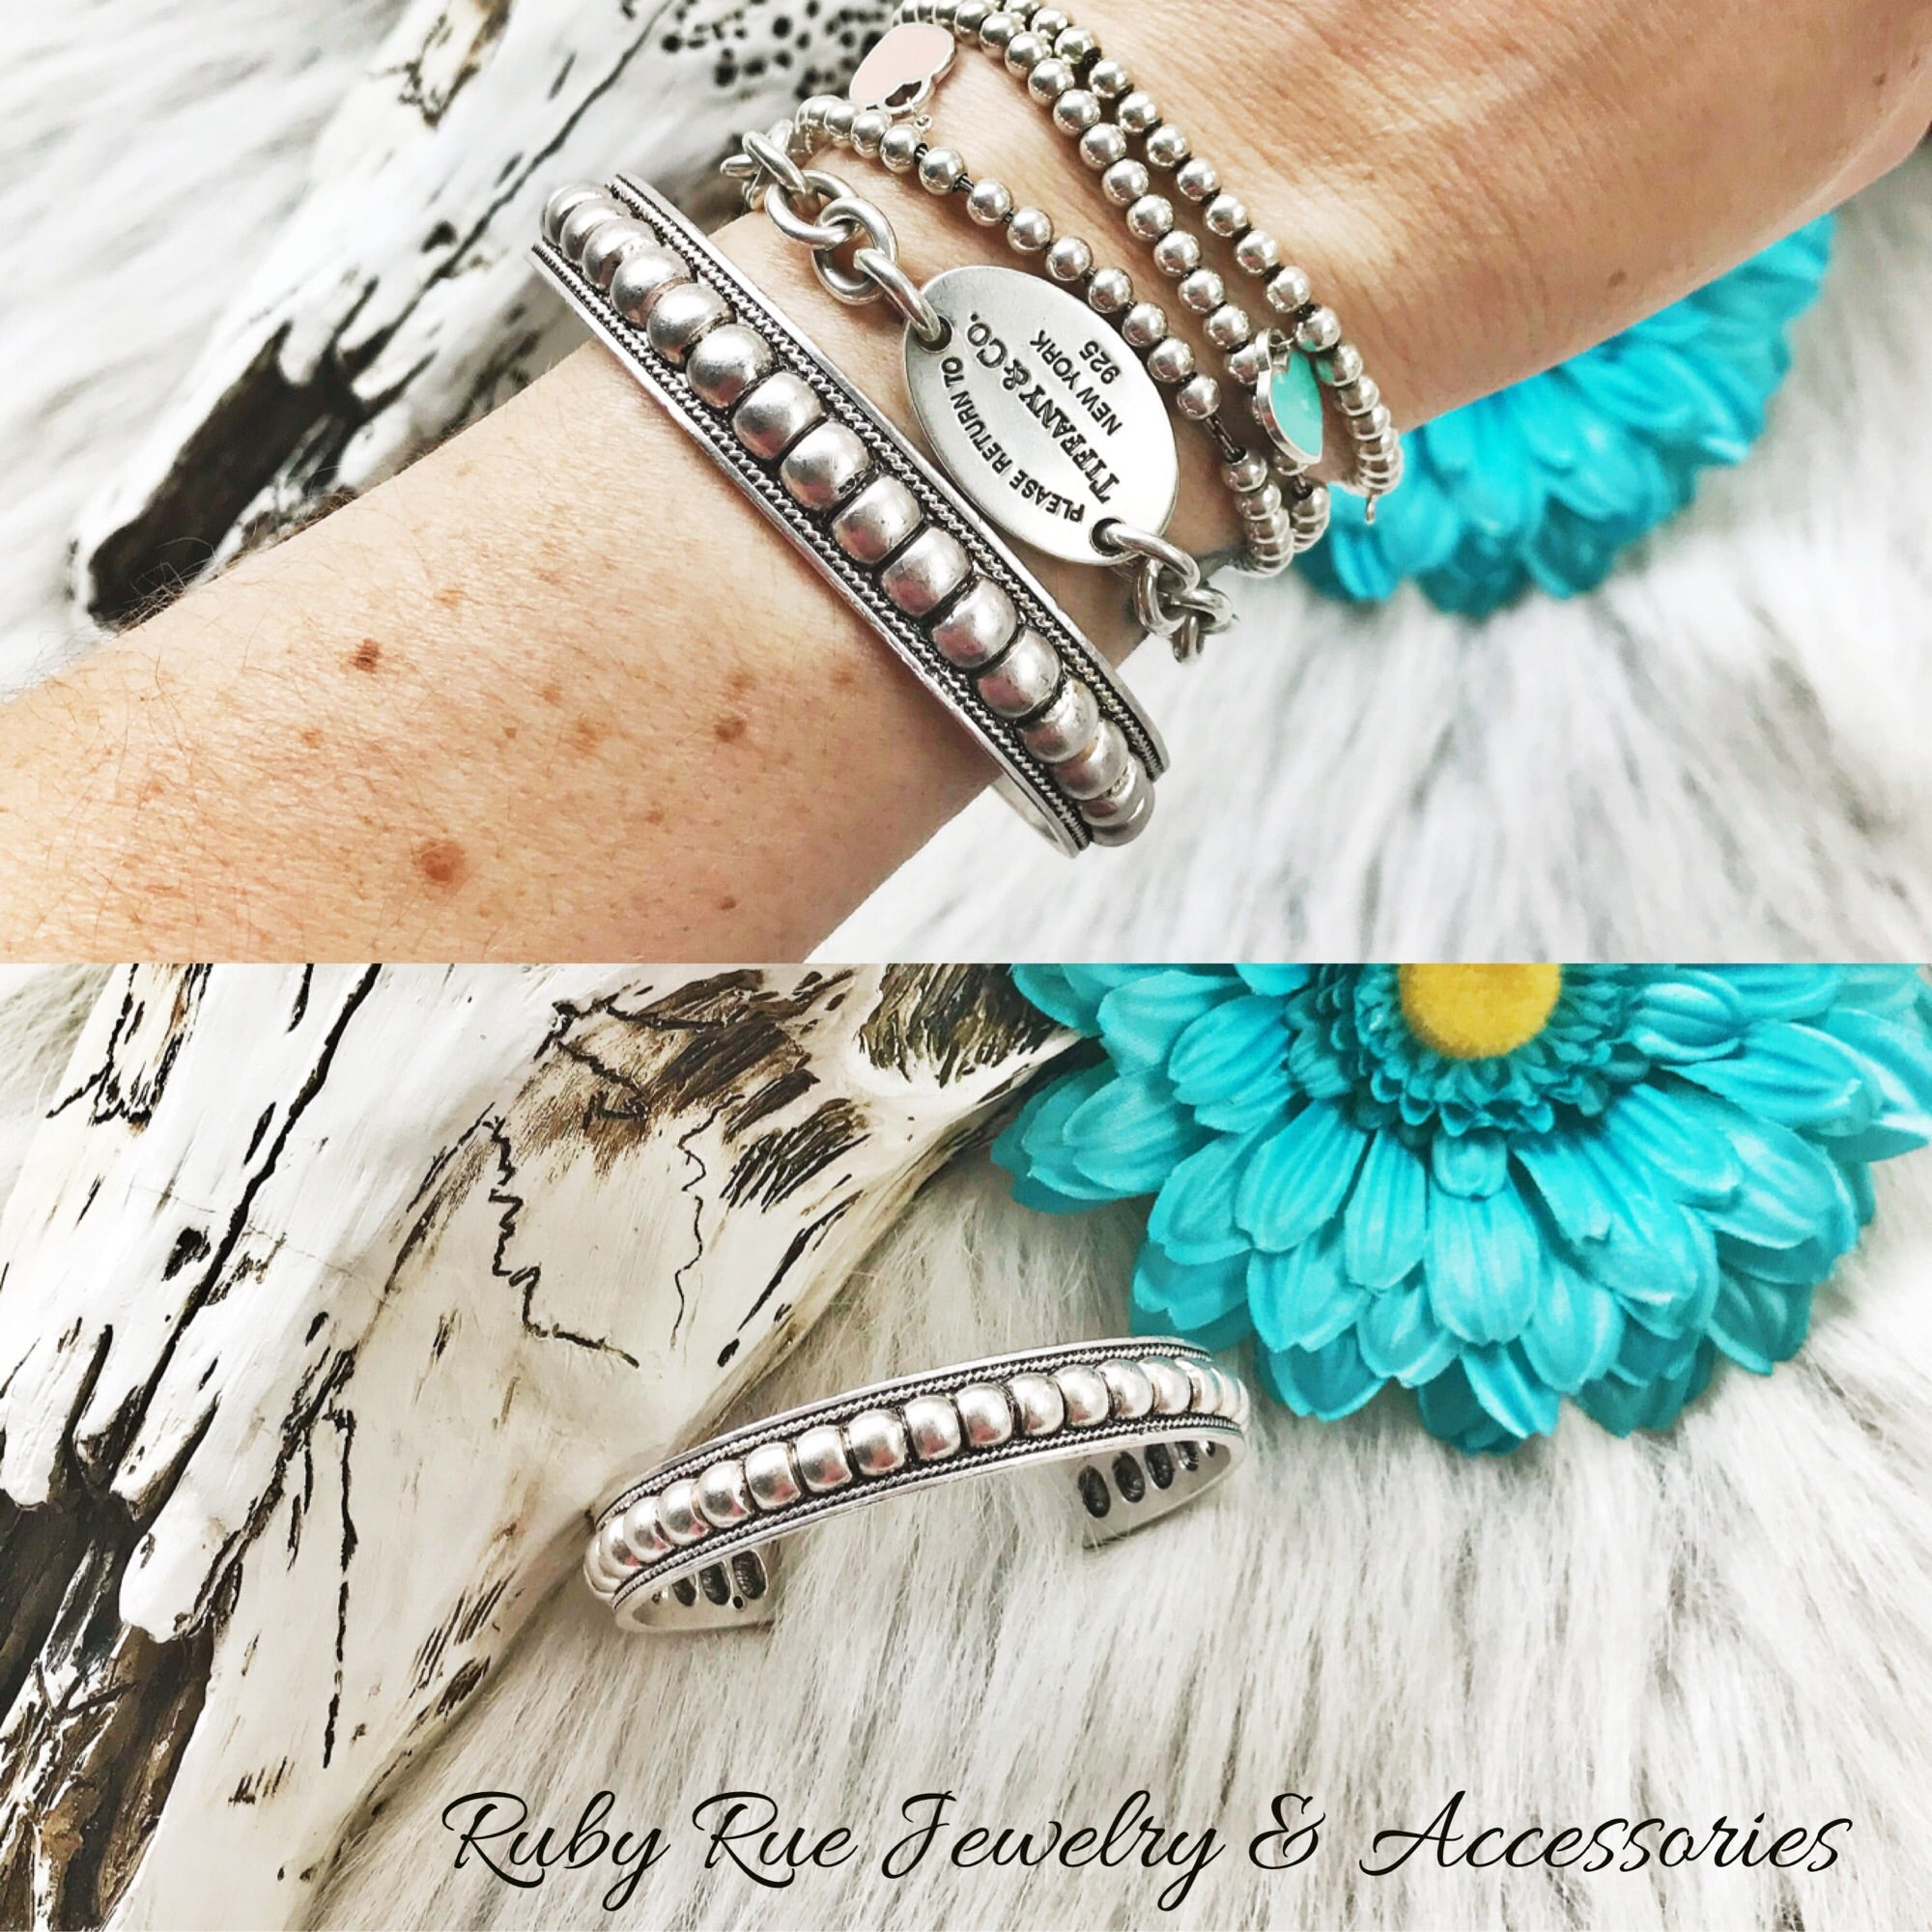 Antiqued Silver Cuff - Ruby Rue Jewelry & Accessories